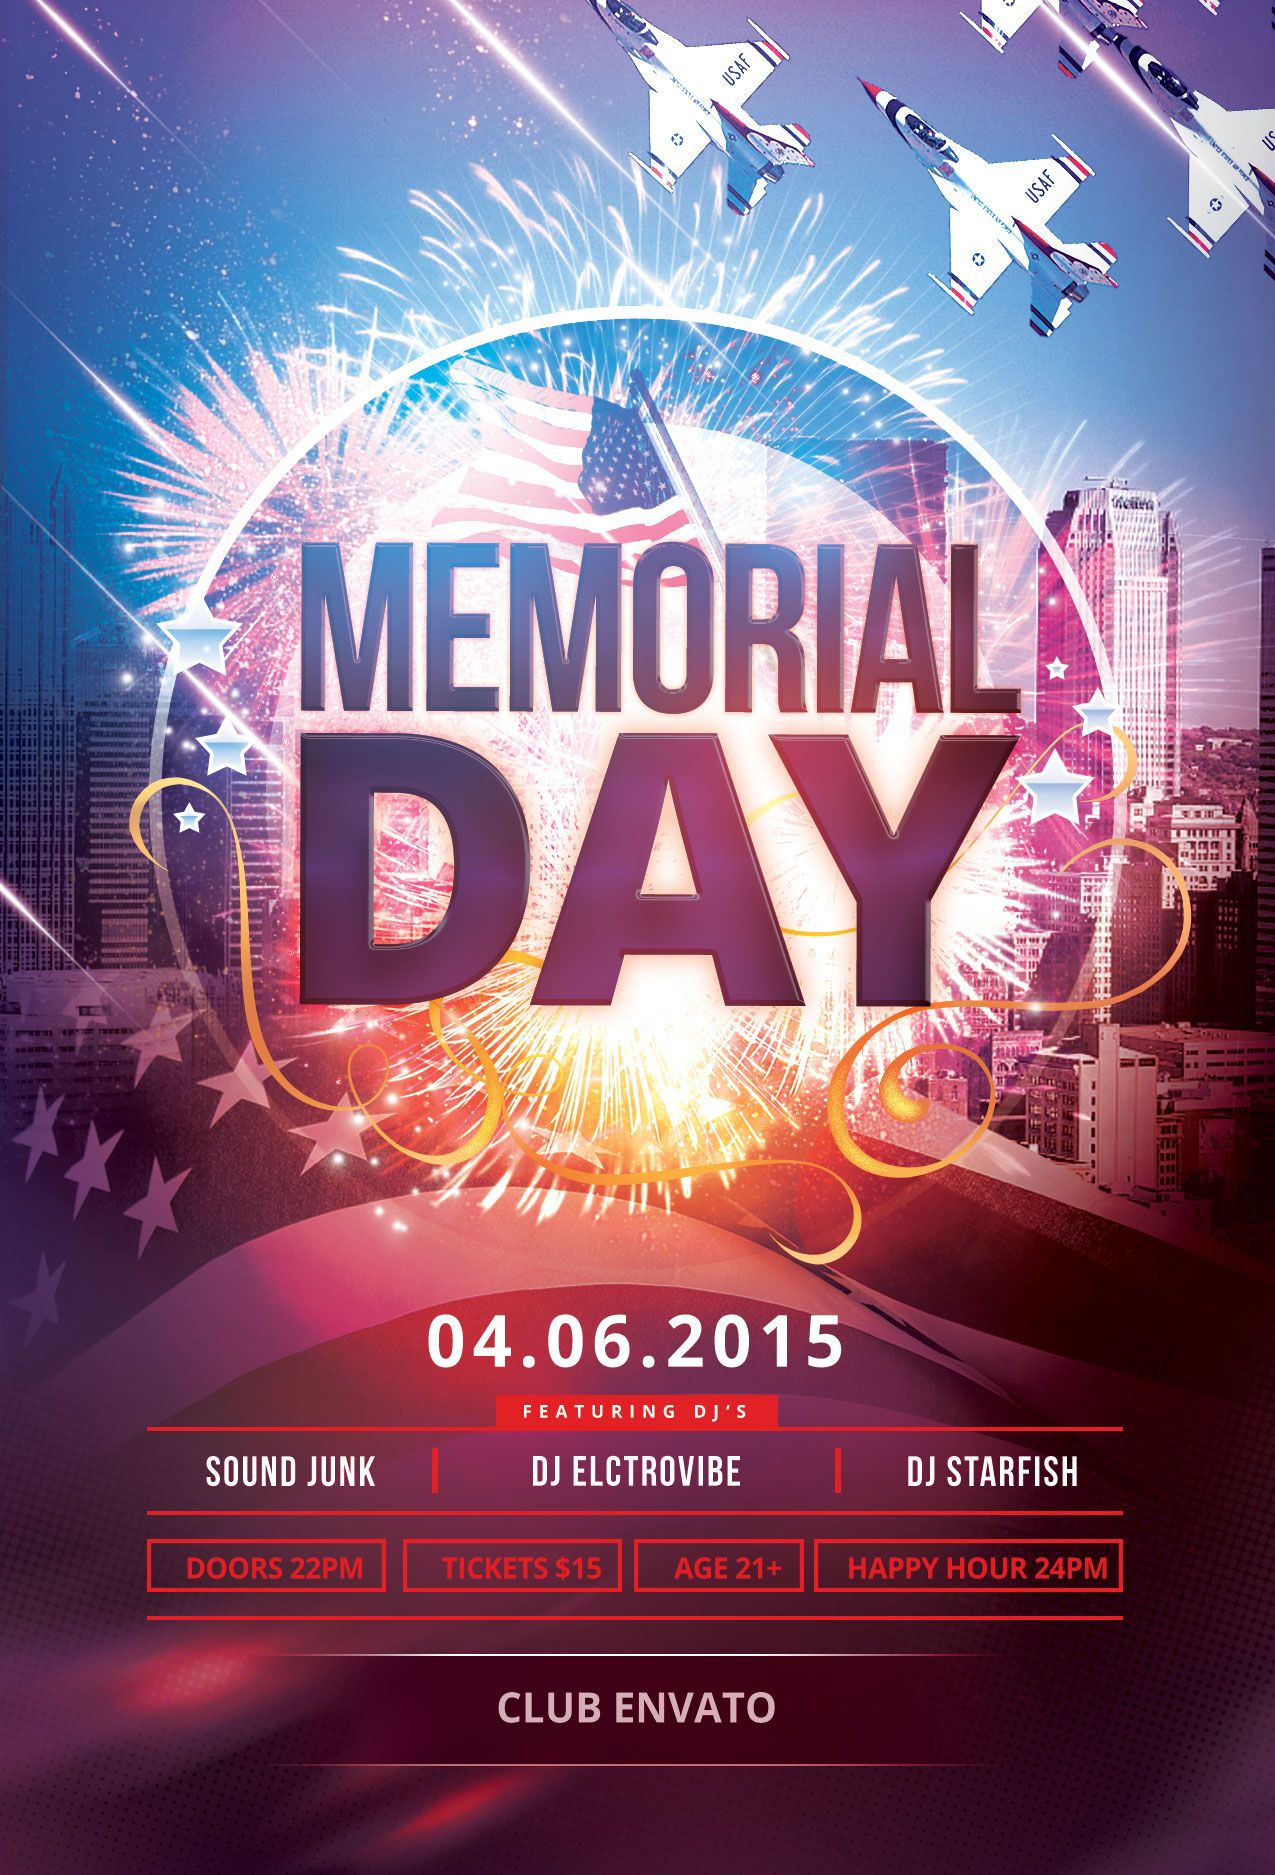 memorial day flyer template download psd file 6 party poster